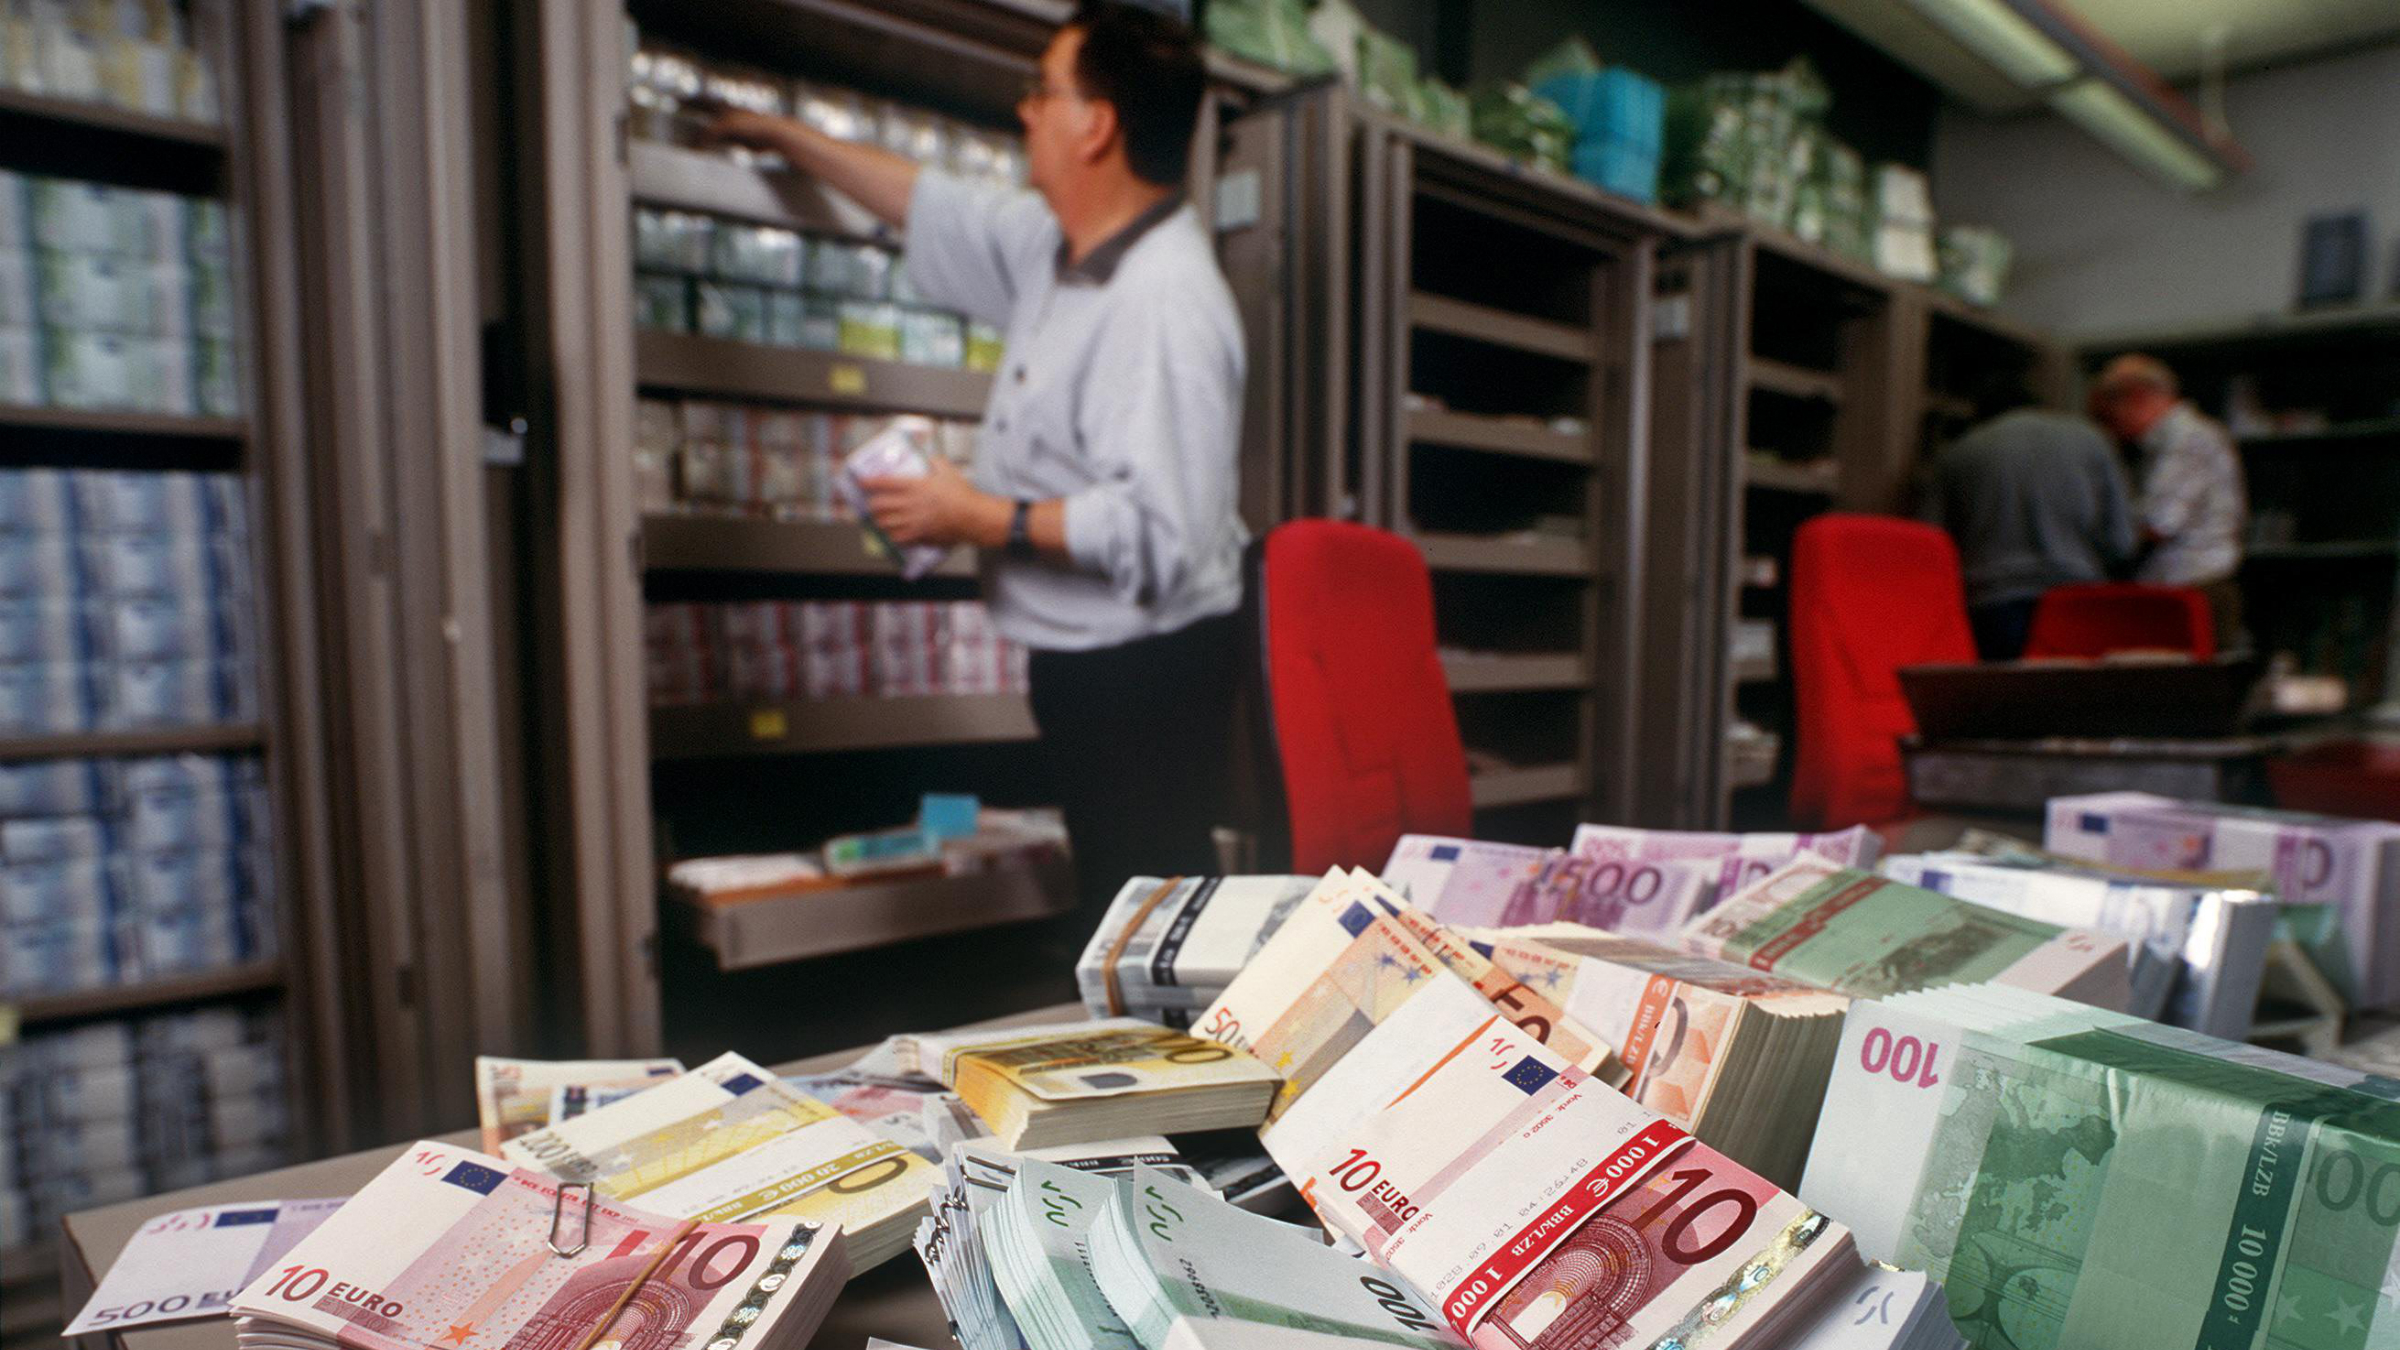 Euro banknotes are piled up on a table in the foreign exchange department of UBS bank in Zurich, Switzerland, in this Dec. 13, 2001 file picture. The euro clawed its way to another record high in trading Monday March 17, 2008, crossing US$1.59 before it tumbled lower, while the Japanese yen fell to another low after the latest emergency rate cut by the U.S. Federal Reserve failed to bolster the dollar. (AP Photo/Keystone, Martin Ruetschi)